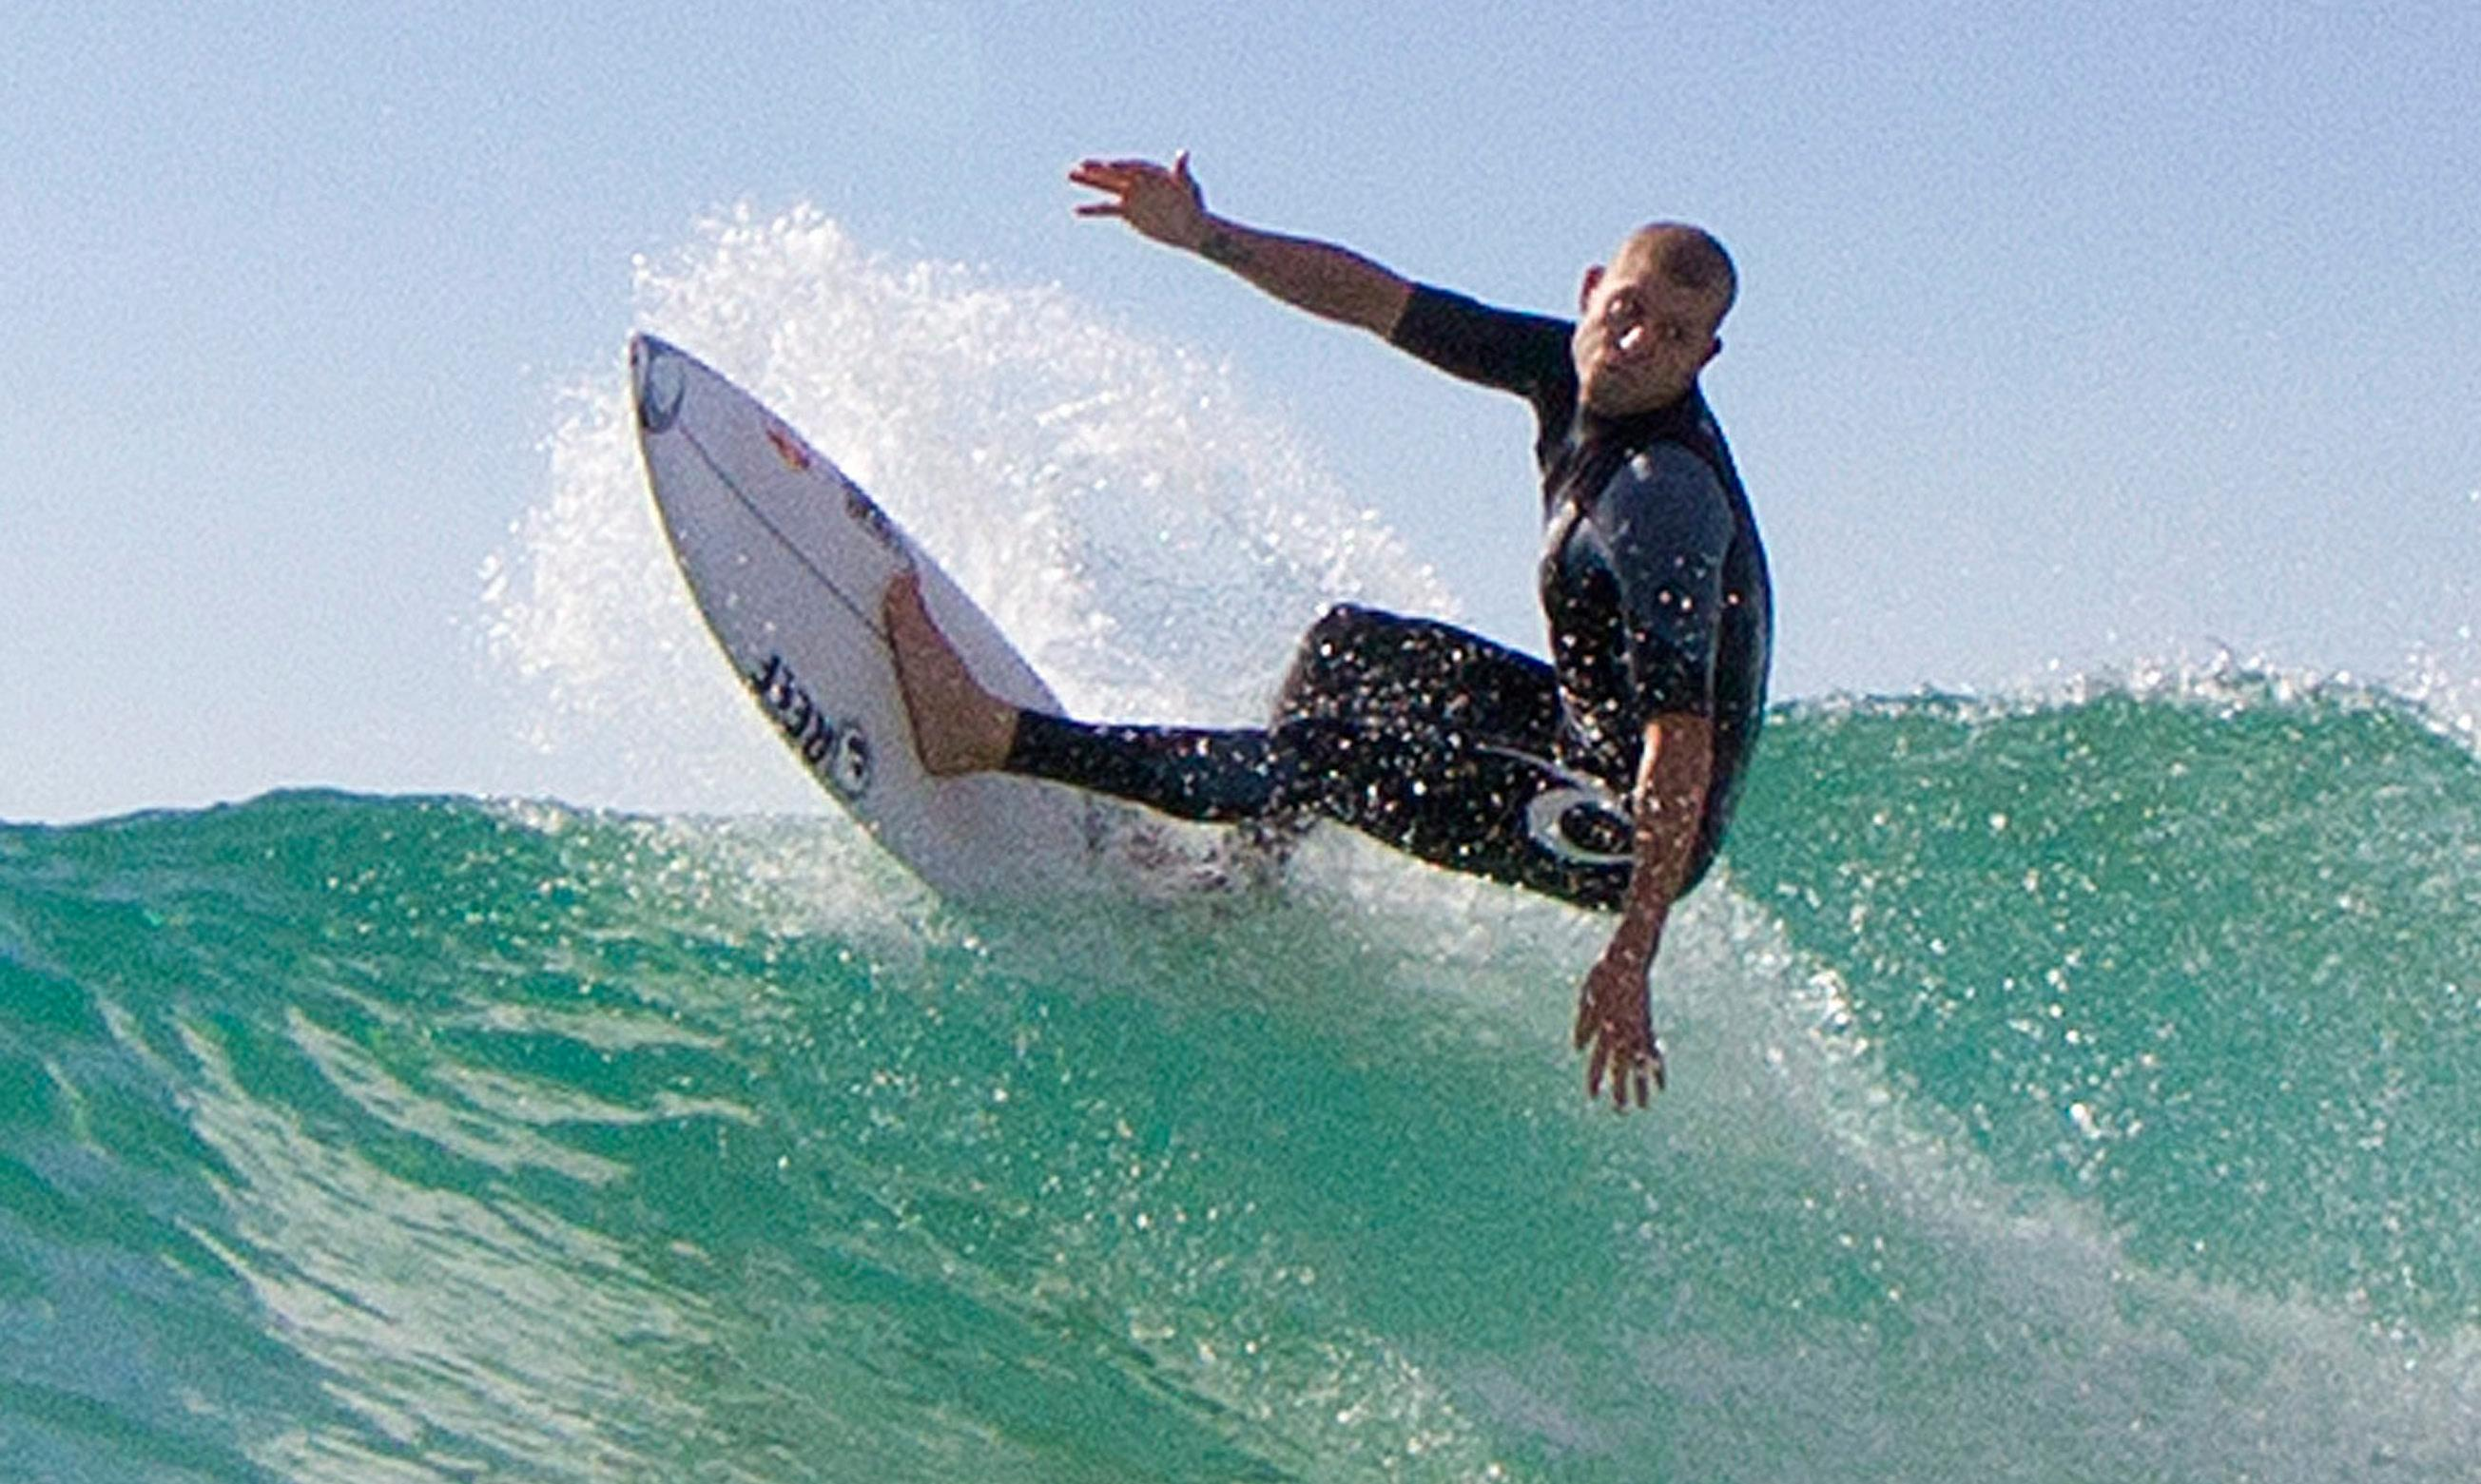 Mick Fanning donates $75,000 TV fee to surfer injured in NSW shark attack